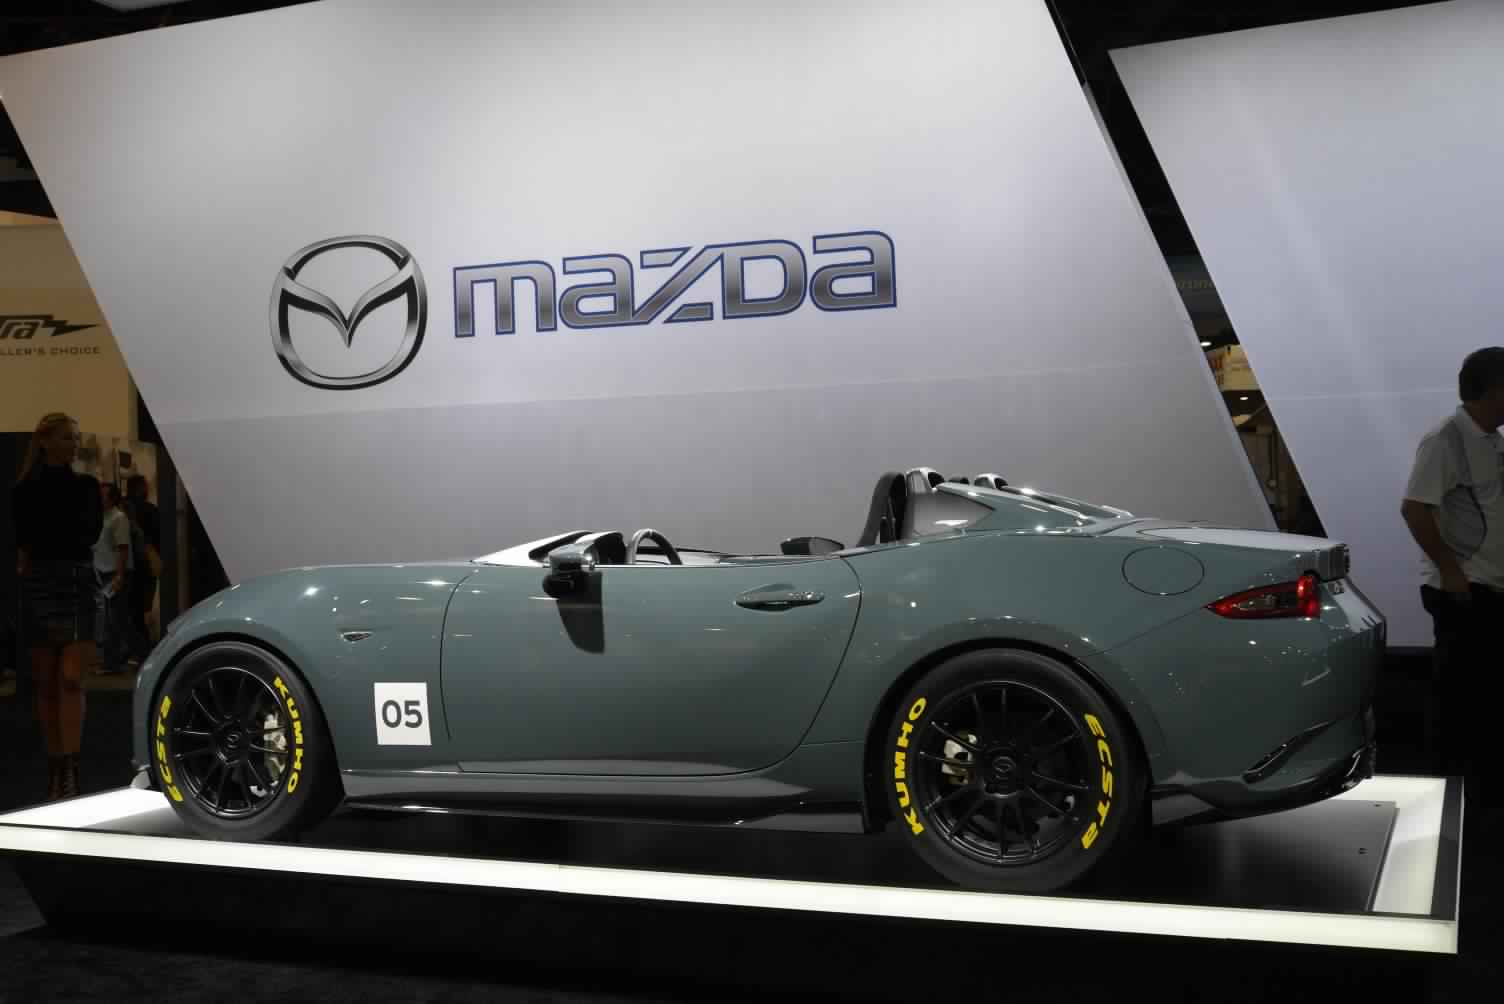 next generation mazda mx 5 could use carbon fiber to cut weight canada journal news of the world. Black Bedroom Furniture Sets. Home Design Ideas